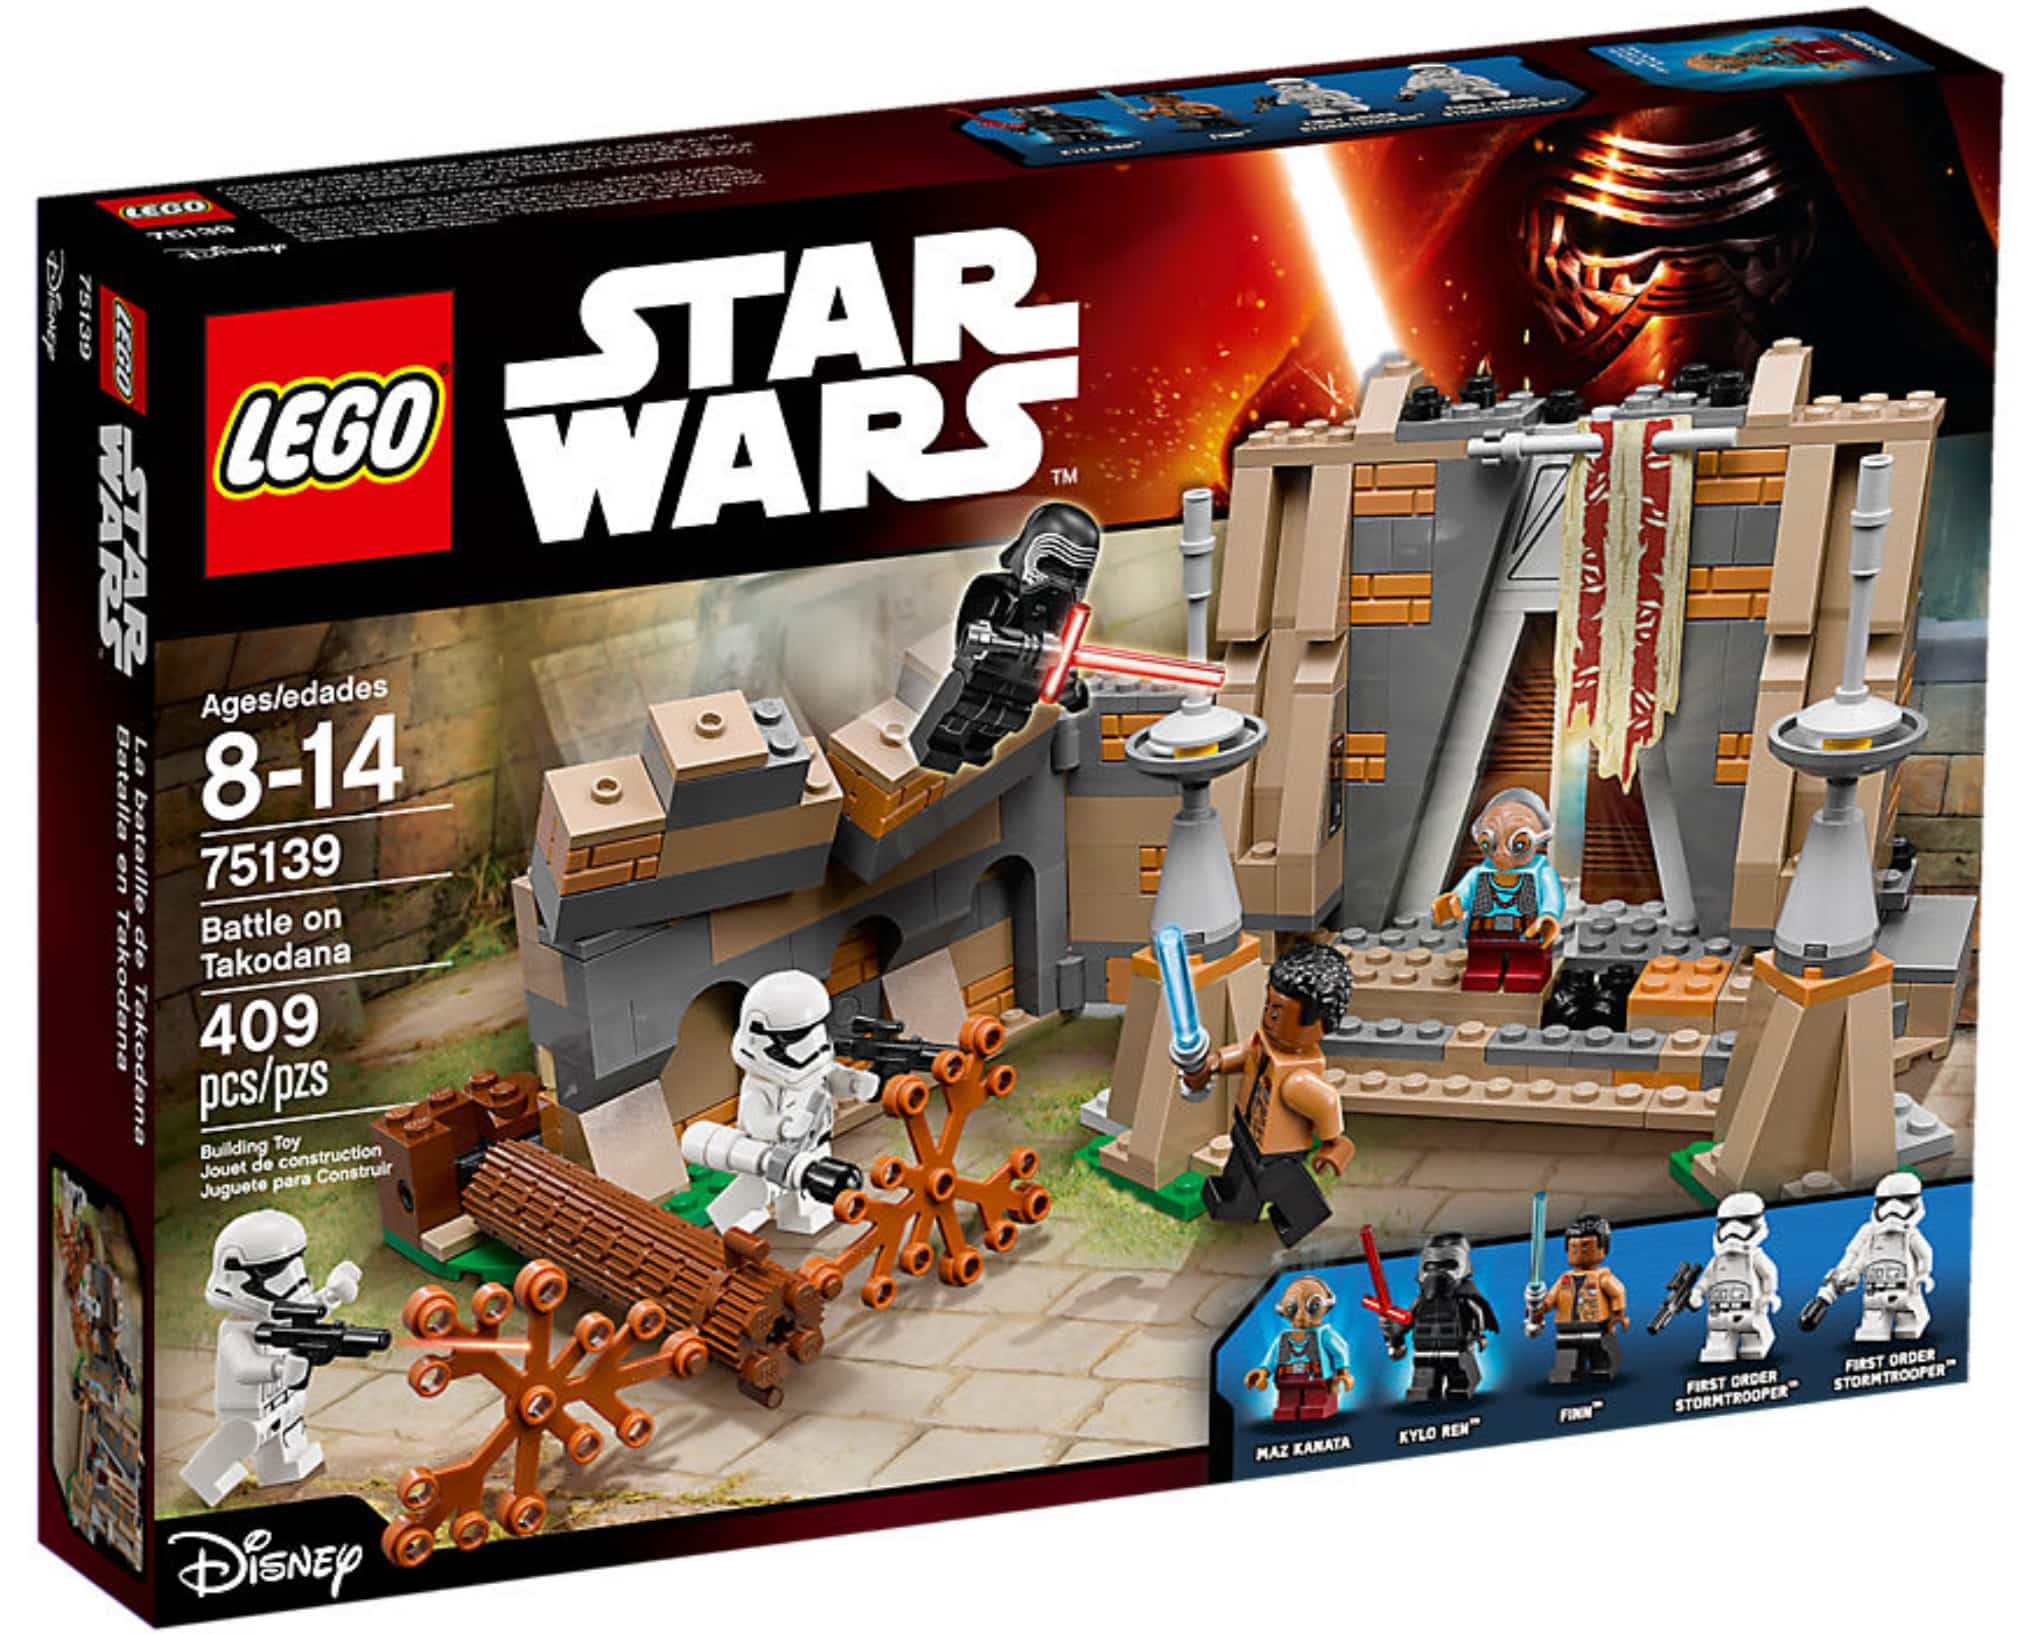 LEGO Star Wars Minifigure Review - 75139